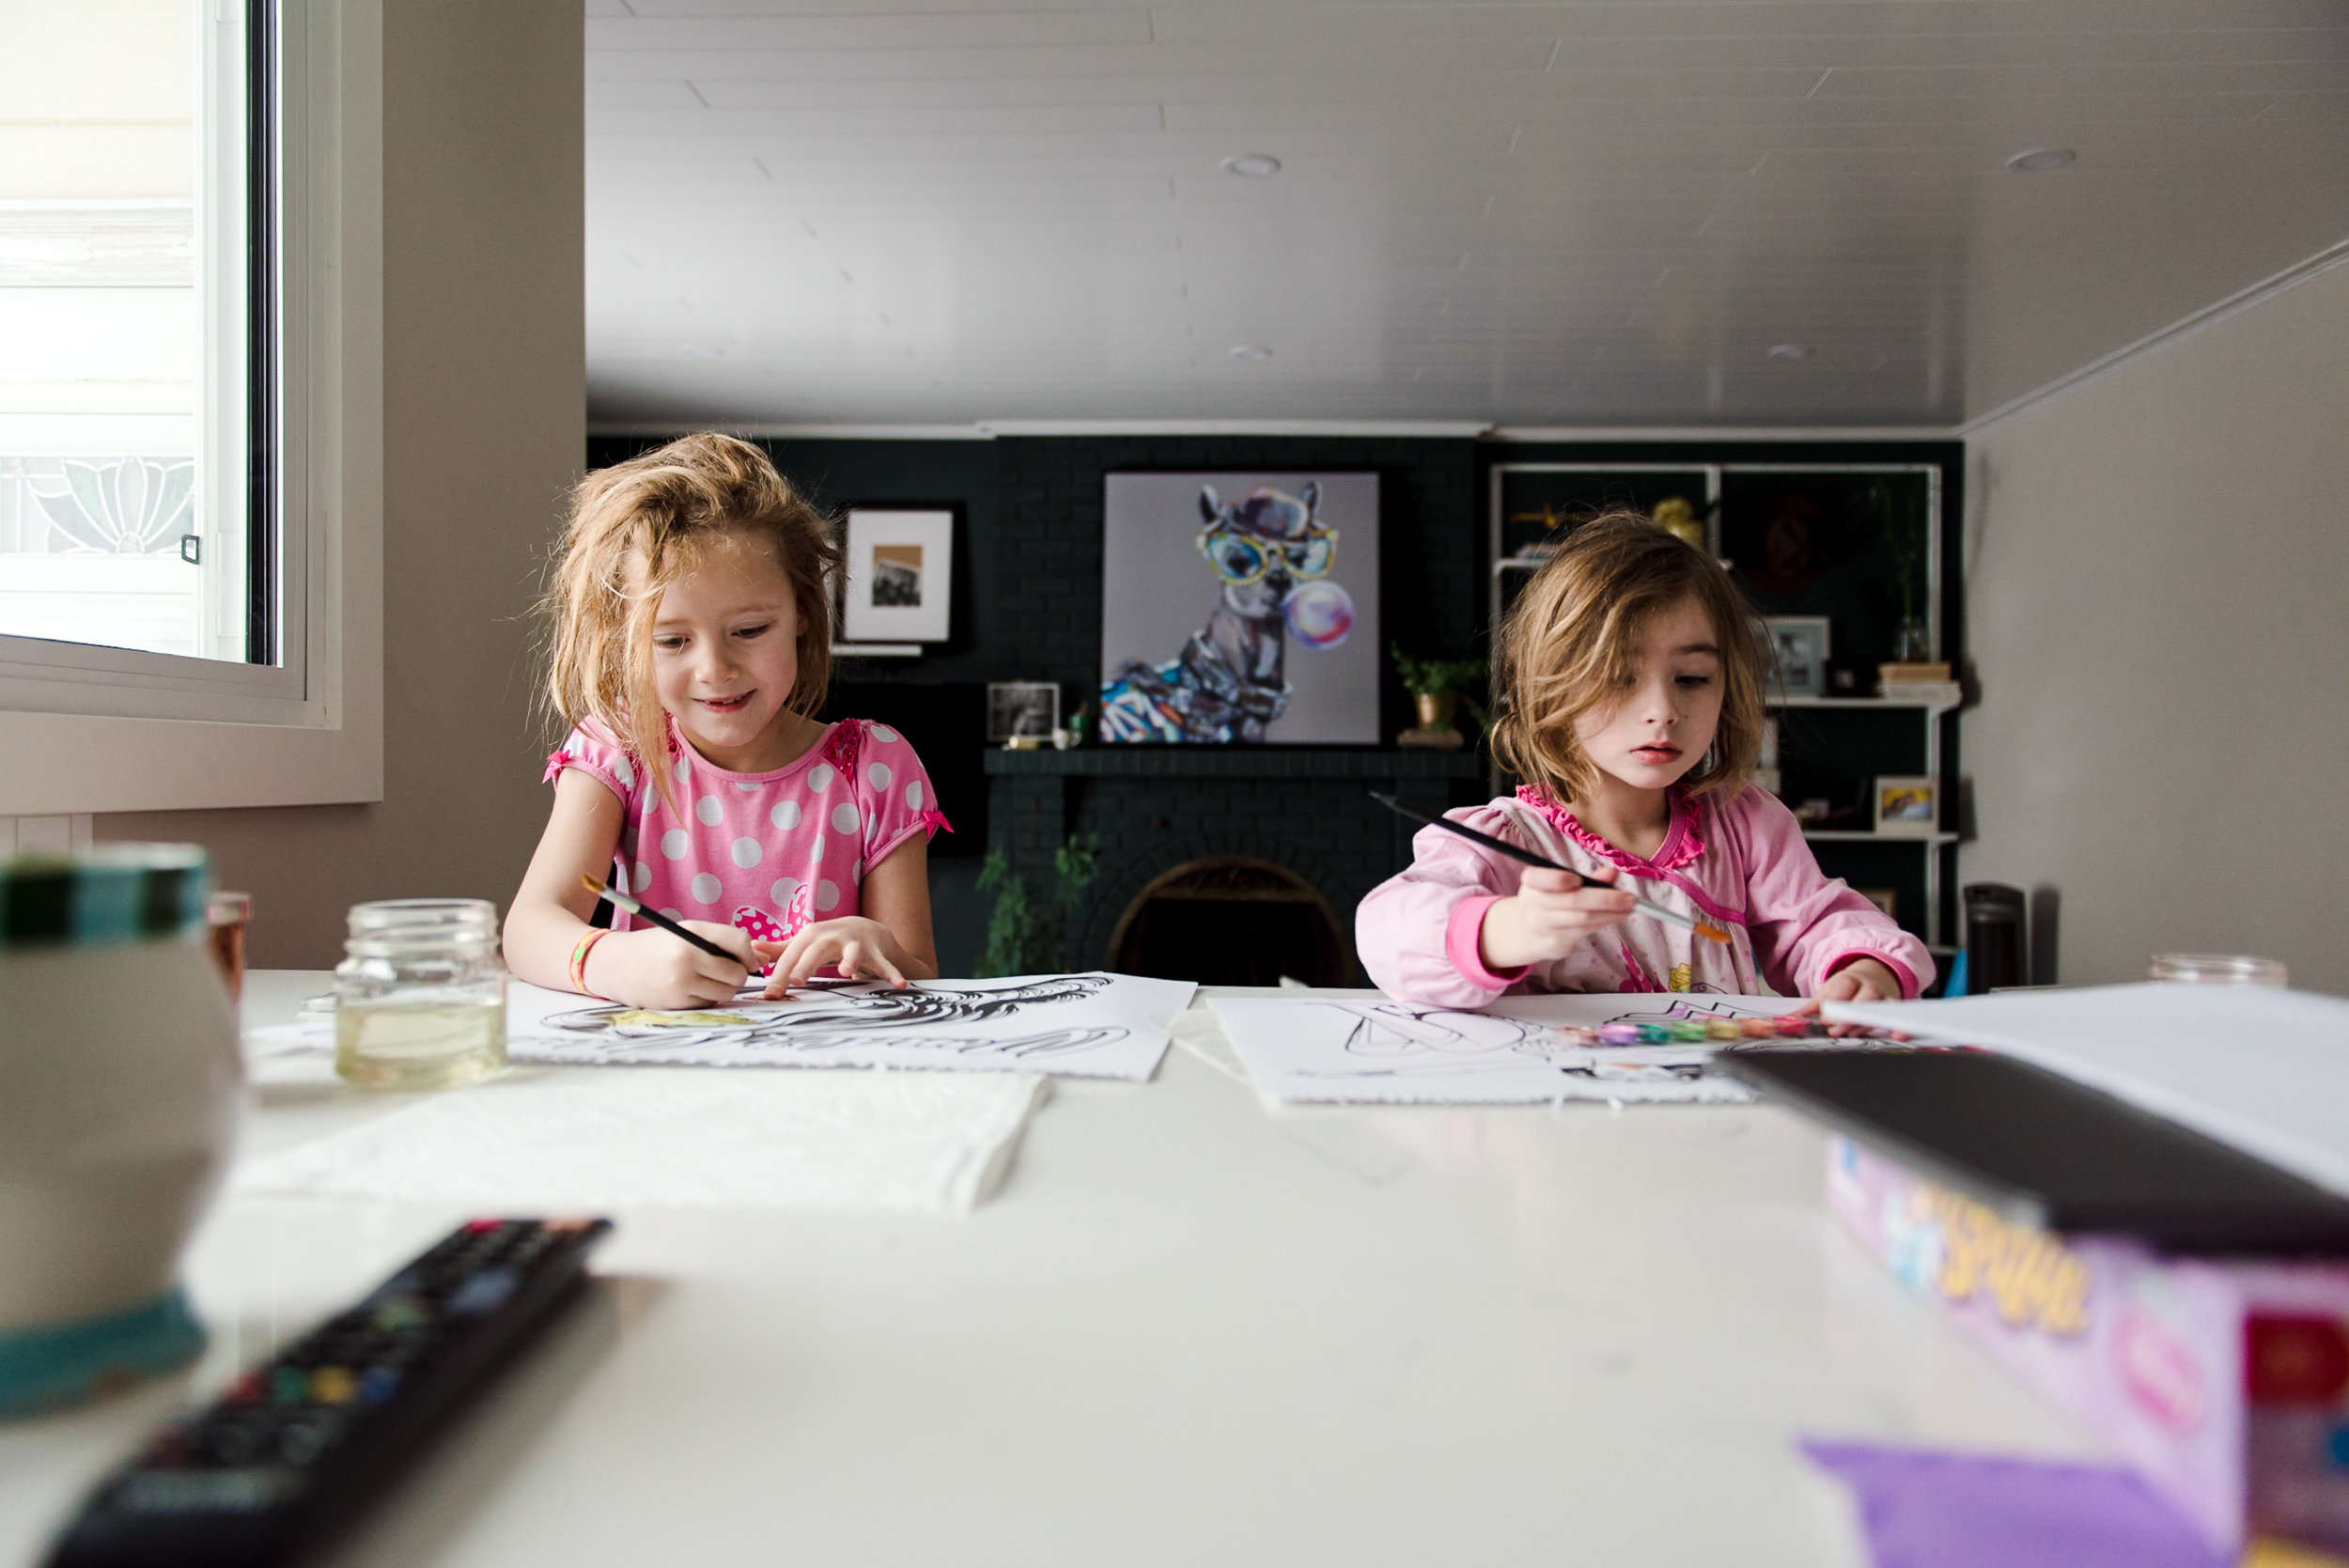 An image of sisters from The Kitchen Counter Series - a photography exercise on Unscripted.